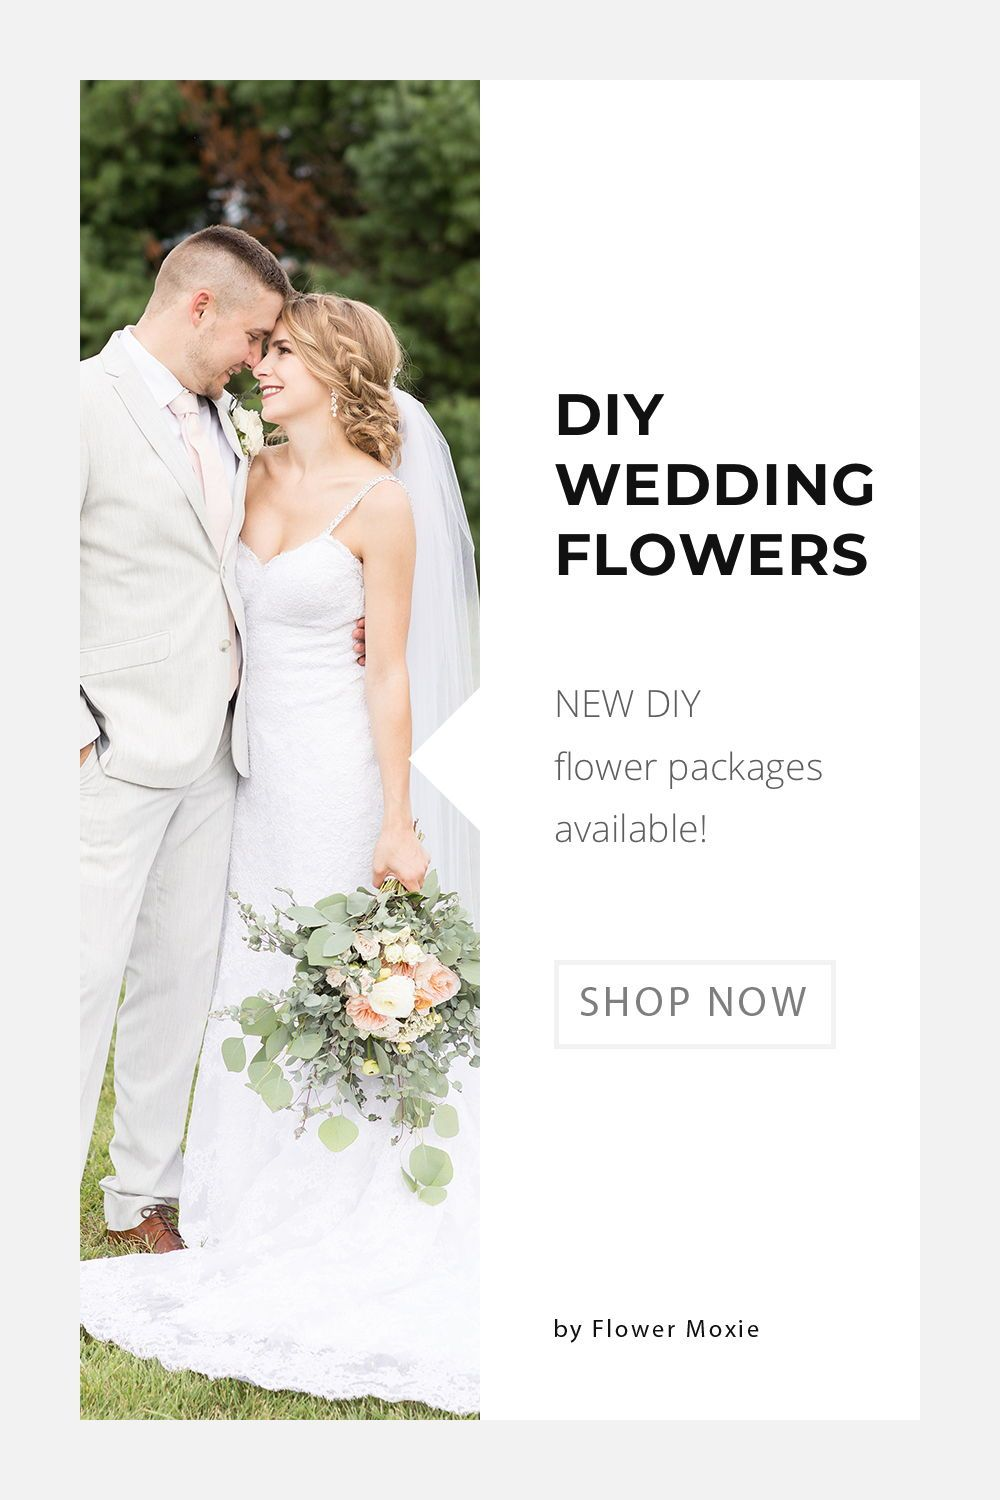 Get Inspired By Our Wedding Flower Packages Mix Match Flowers To Achieve The Look You Want O Wedding Flower Packages Flower Packaging Online Wedding Flowers